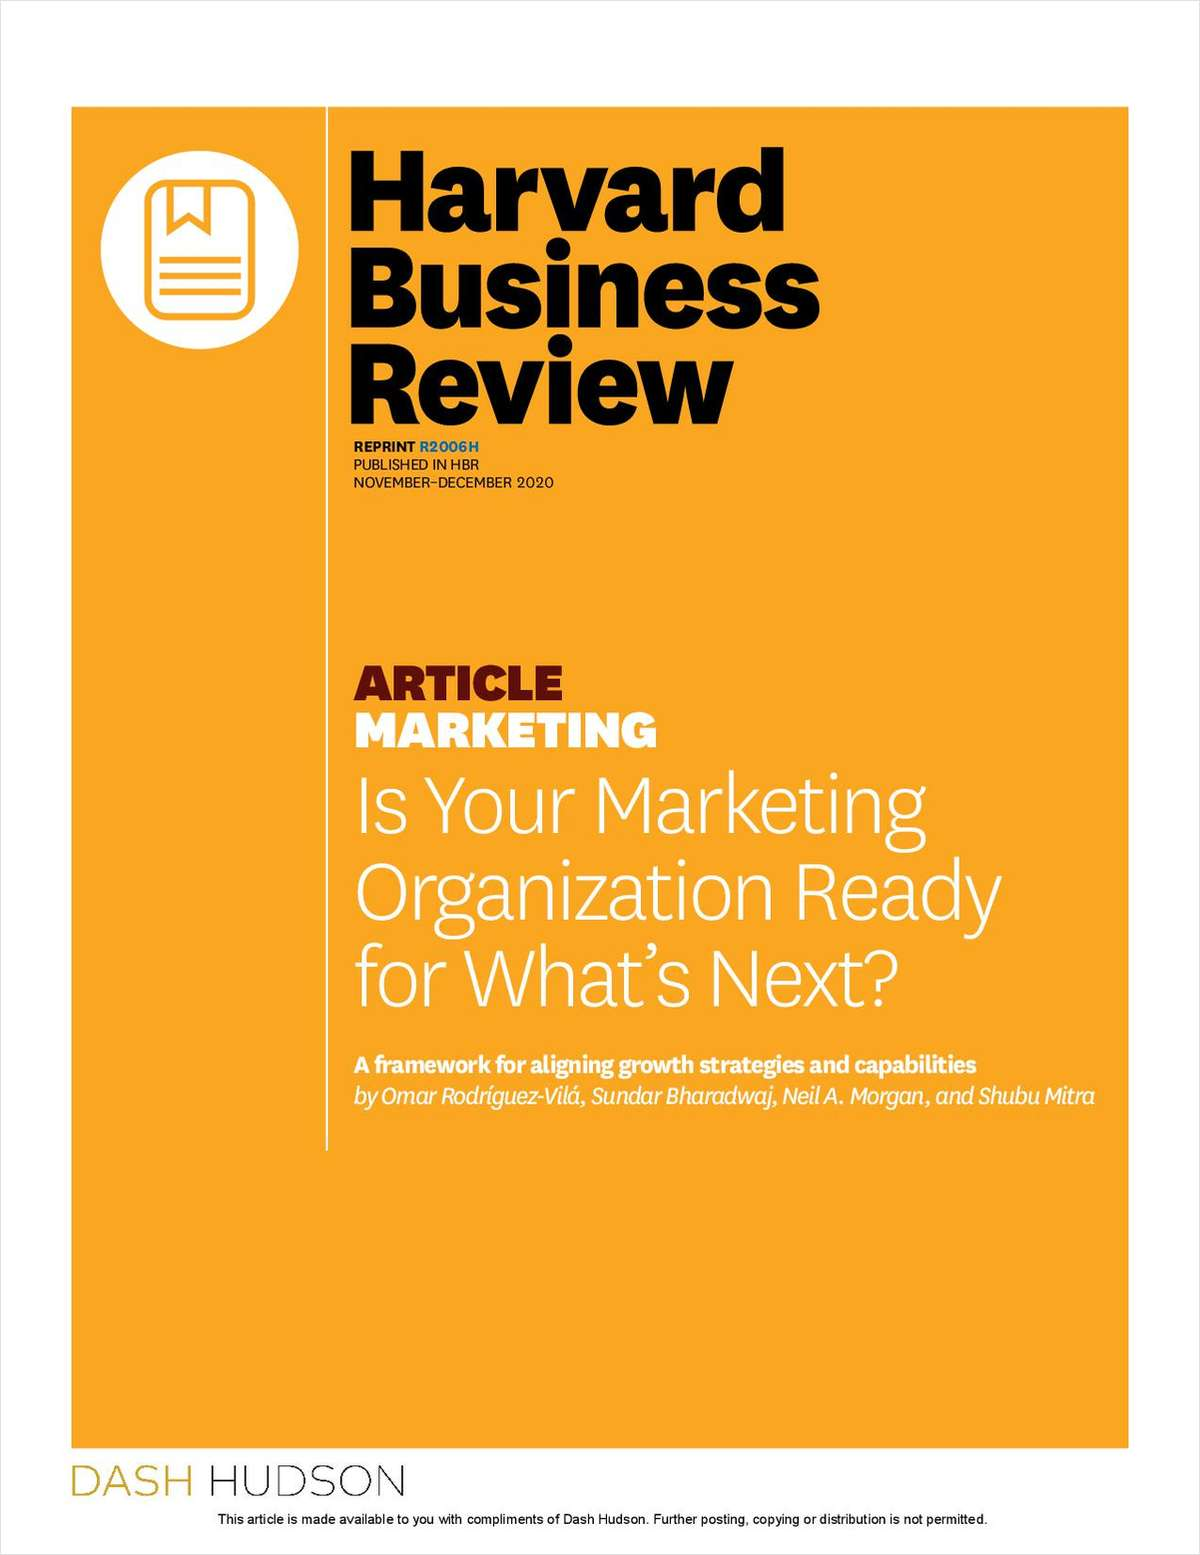 Is Your Marketing Organization Ready for What's Next?